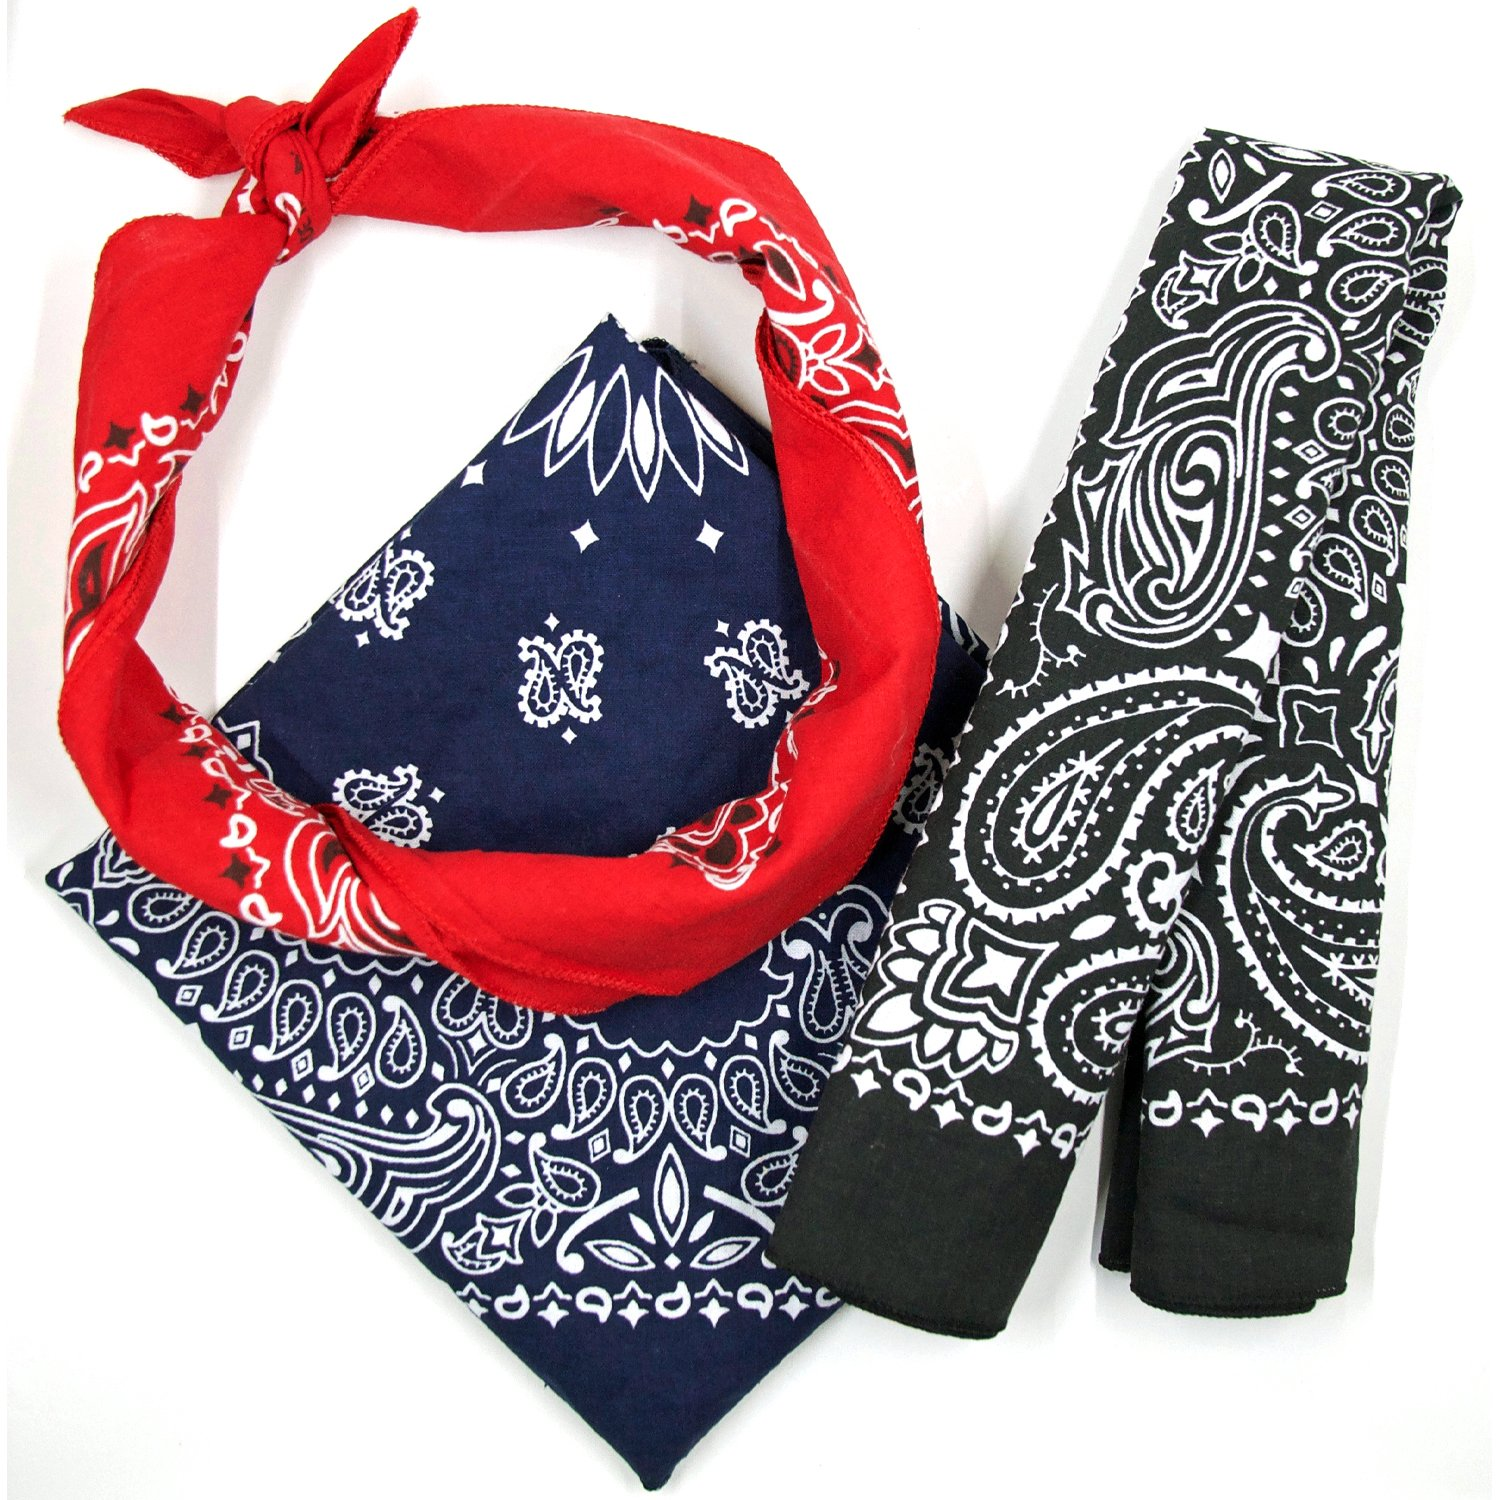 Bandana 3-Pack - Made in USA For 70 Years - Sold by Vets – 100% Cotton –Sewn Edges by OHSAY USA (Image #4)